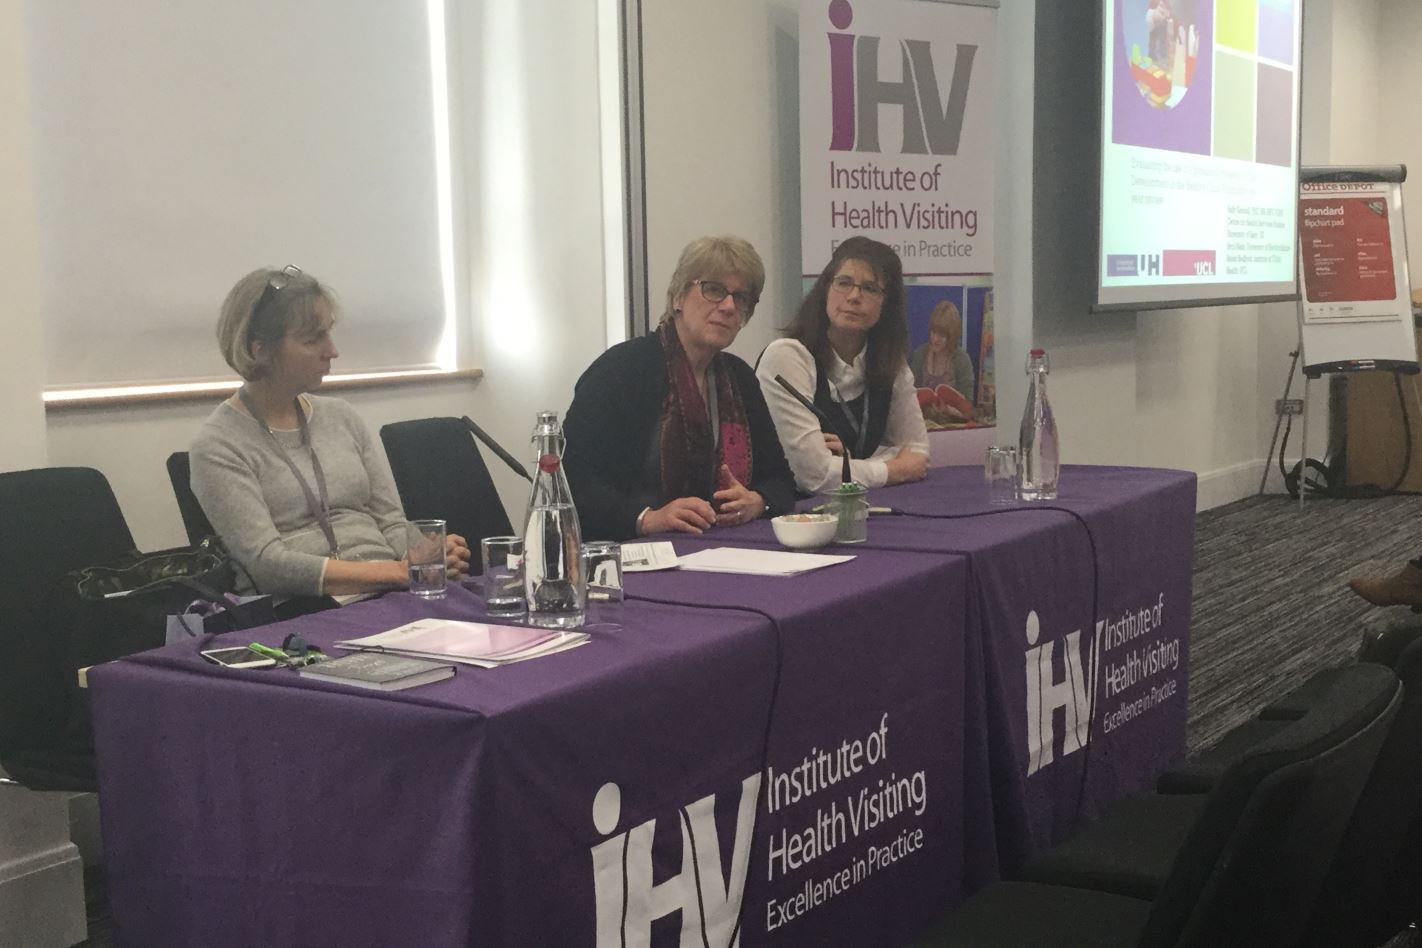 Panel Q&A session with (from left), Professor Louise Condon, Professor Sally Kendall and Dr Karen Whittaker